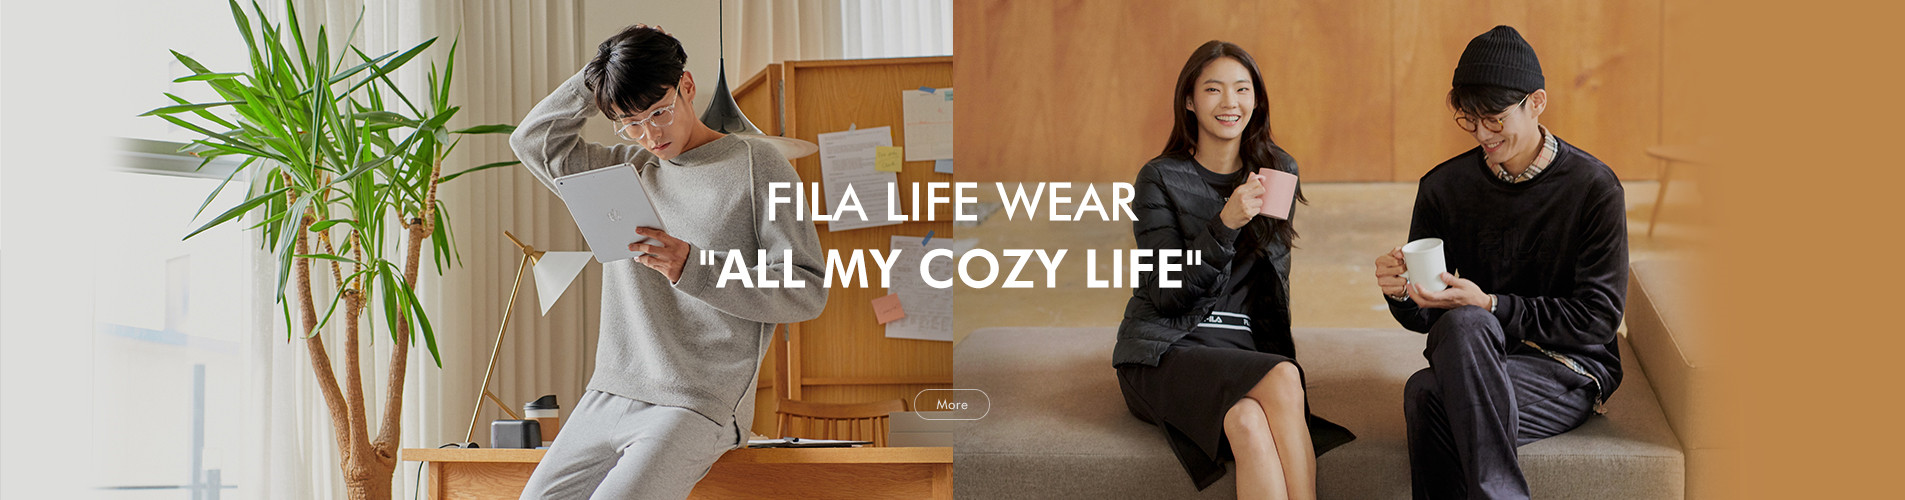 FILA LIFE WEAR ALL MY COZY LIFE mobile